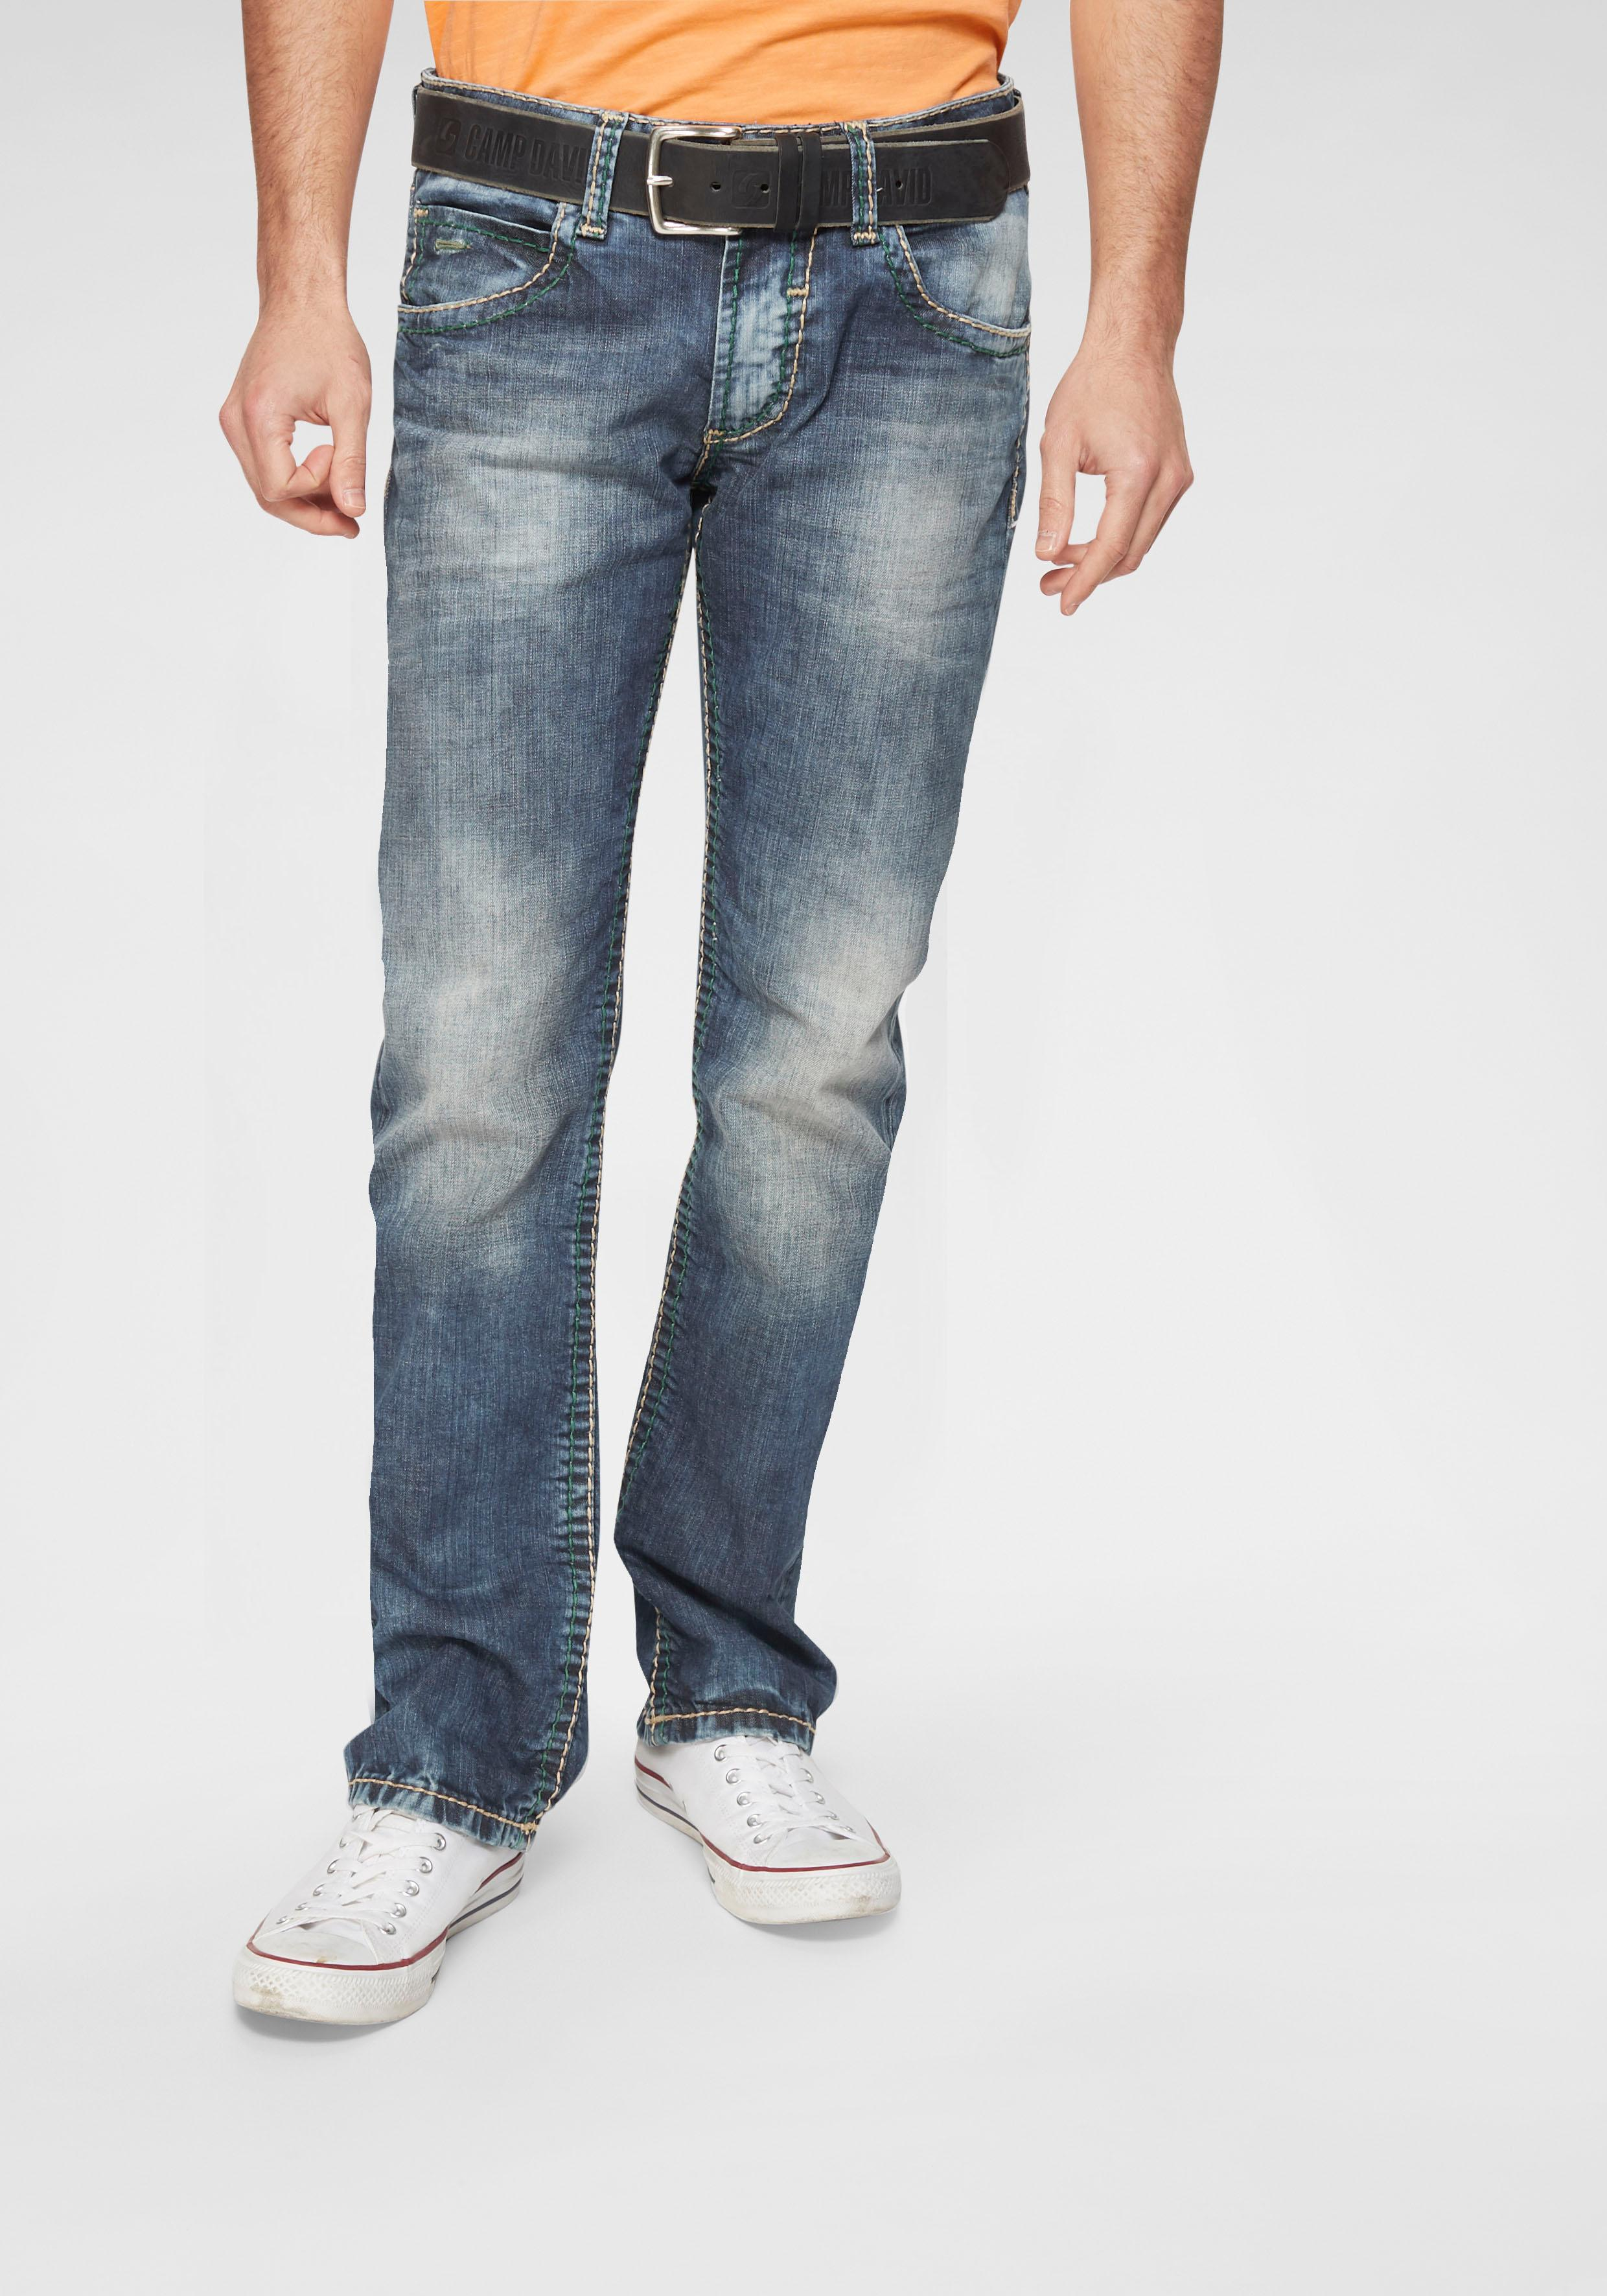 CAMP DAVID Straight-Jeans NI:CO:R611 | Bekleidung > Jeans > Straight Leg Jeans | Blau | camp david